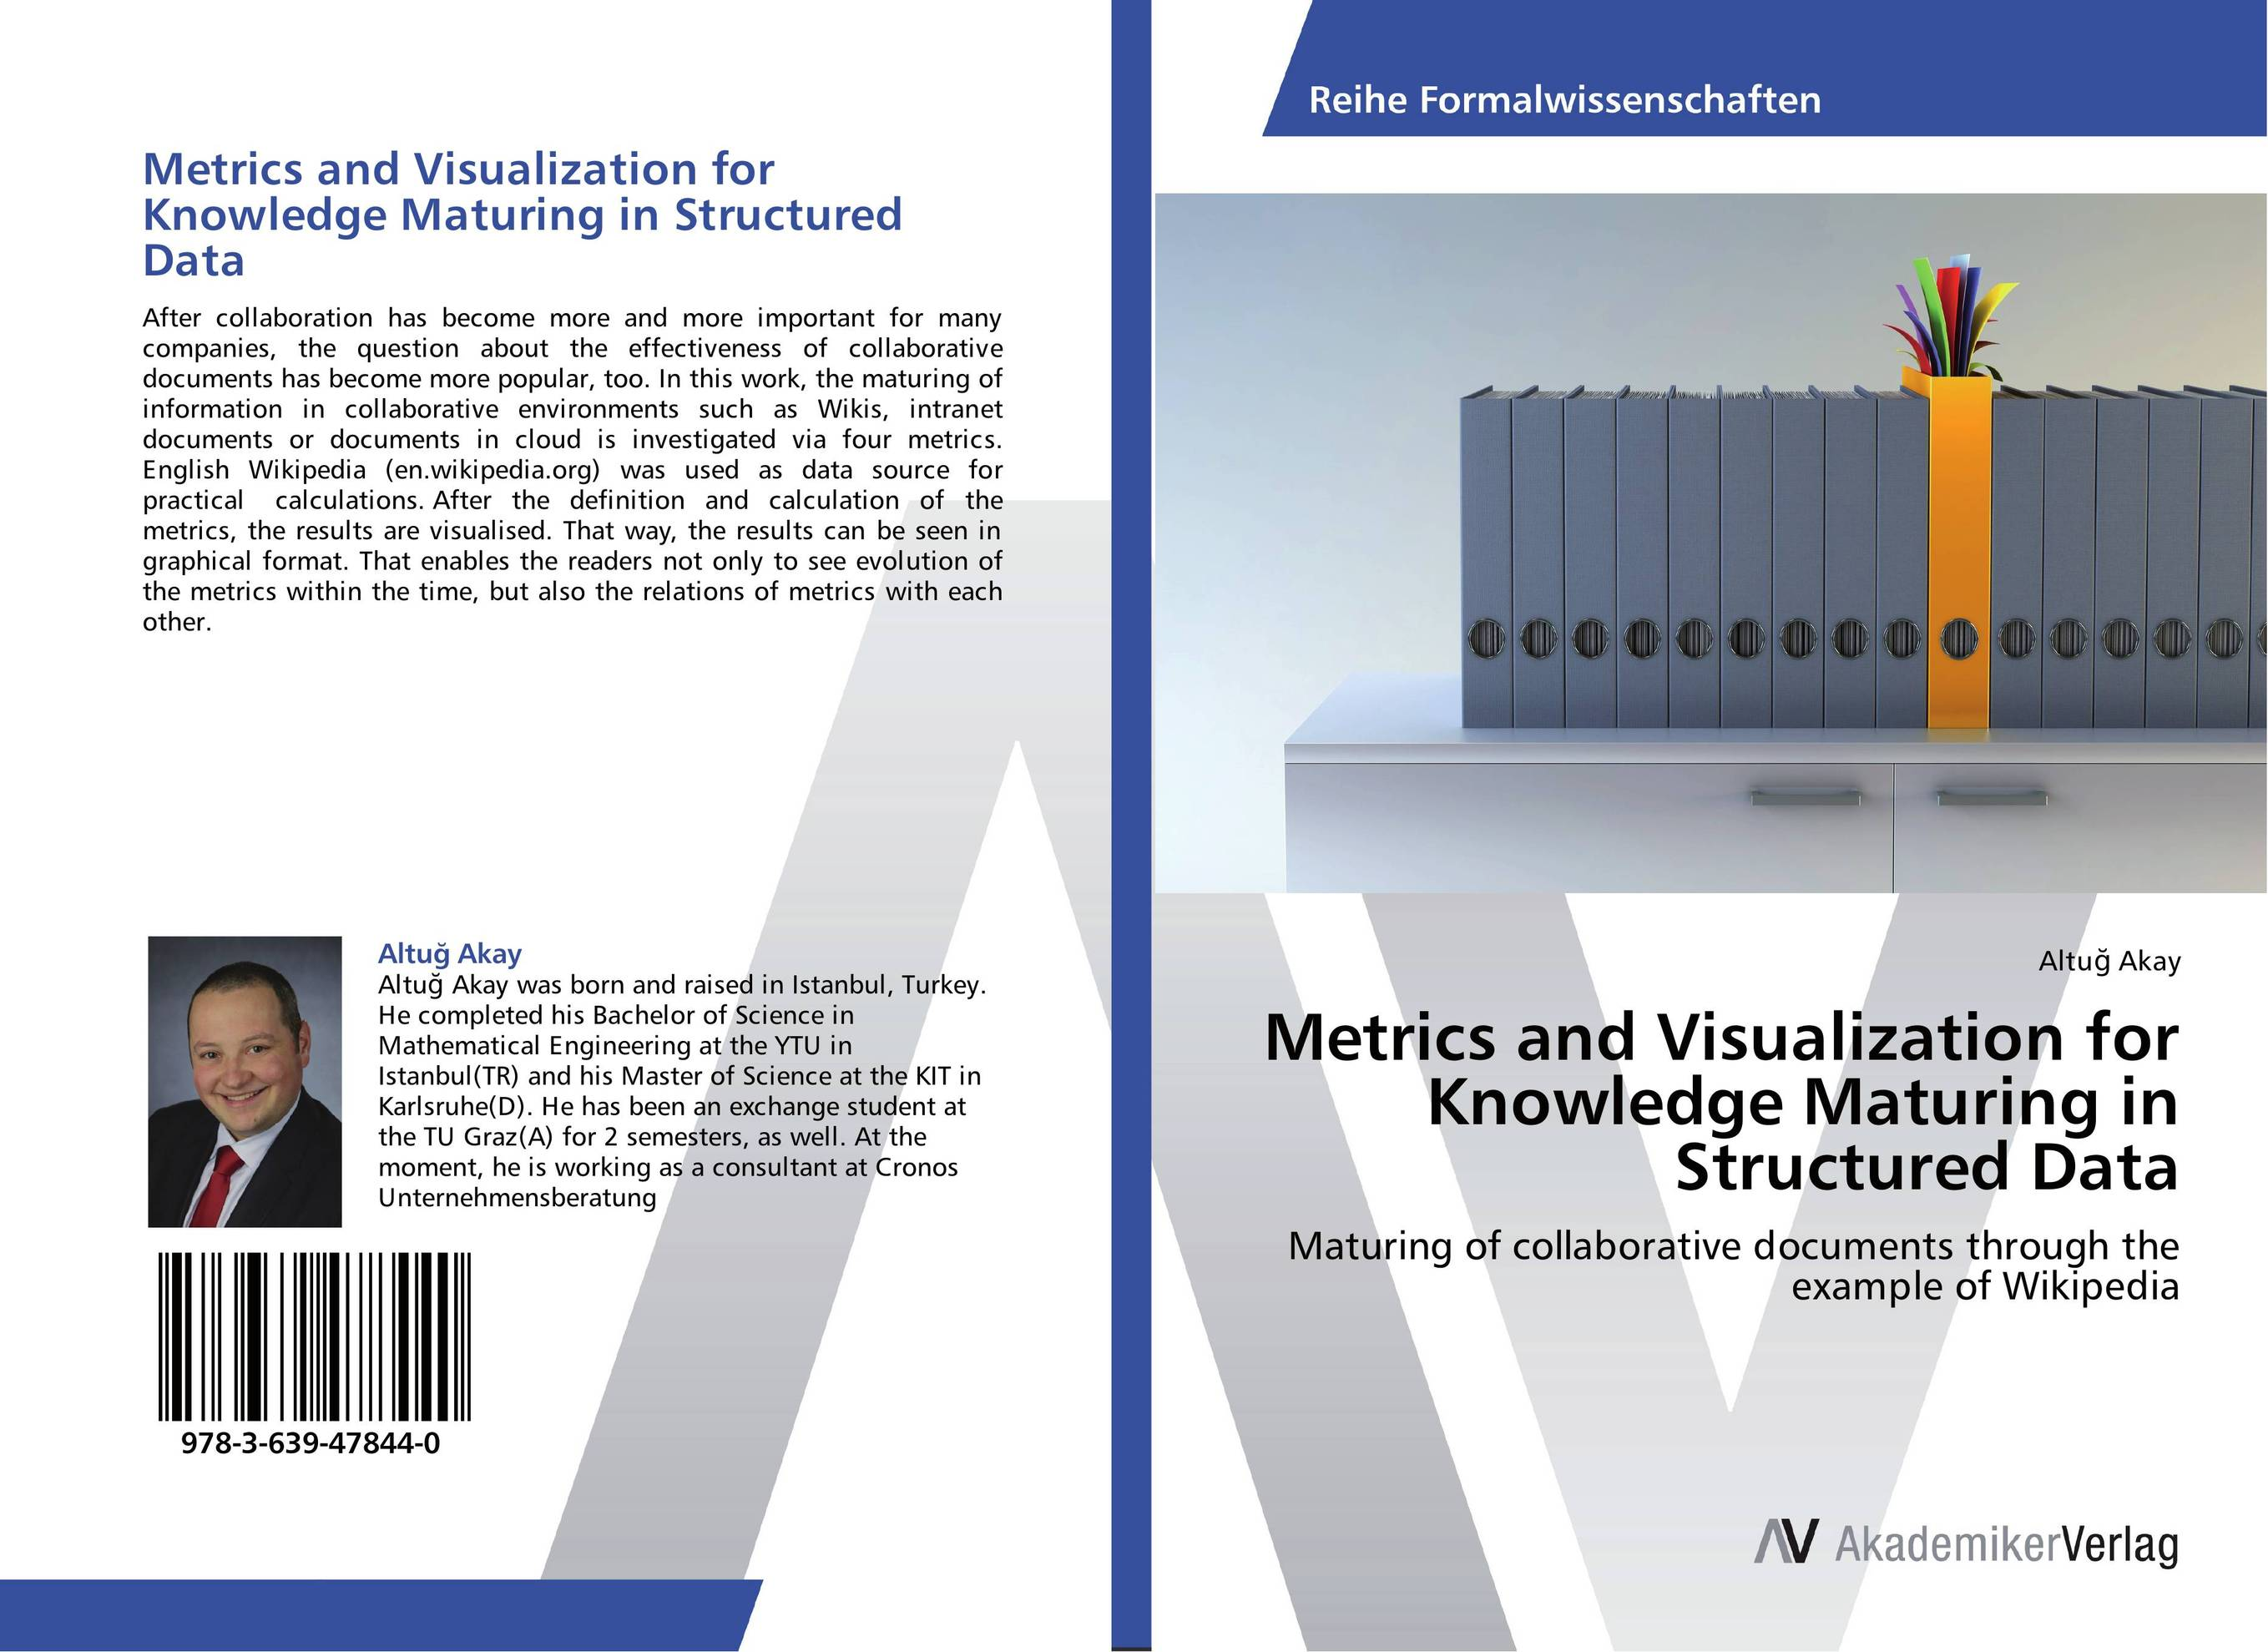 Metrics and Visualization for Knowledge Maturing in Structured Data the destruction of tilted arc – documents